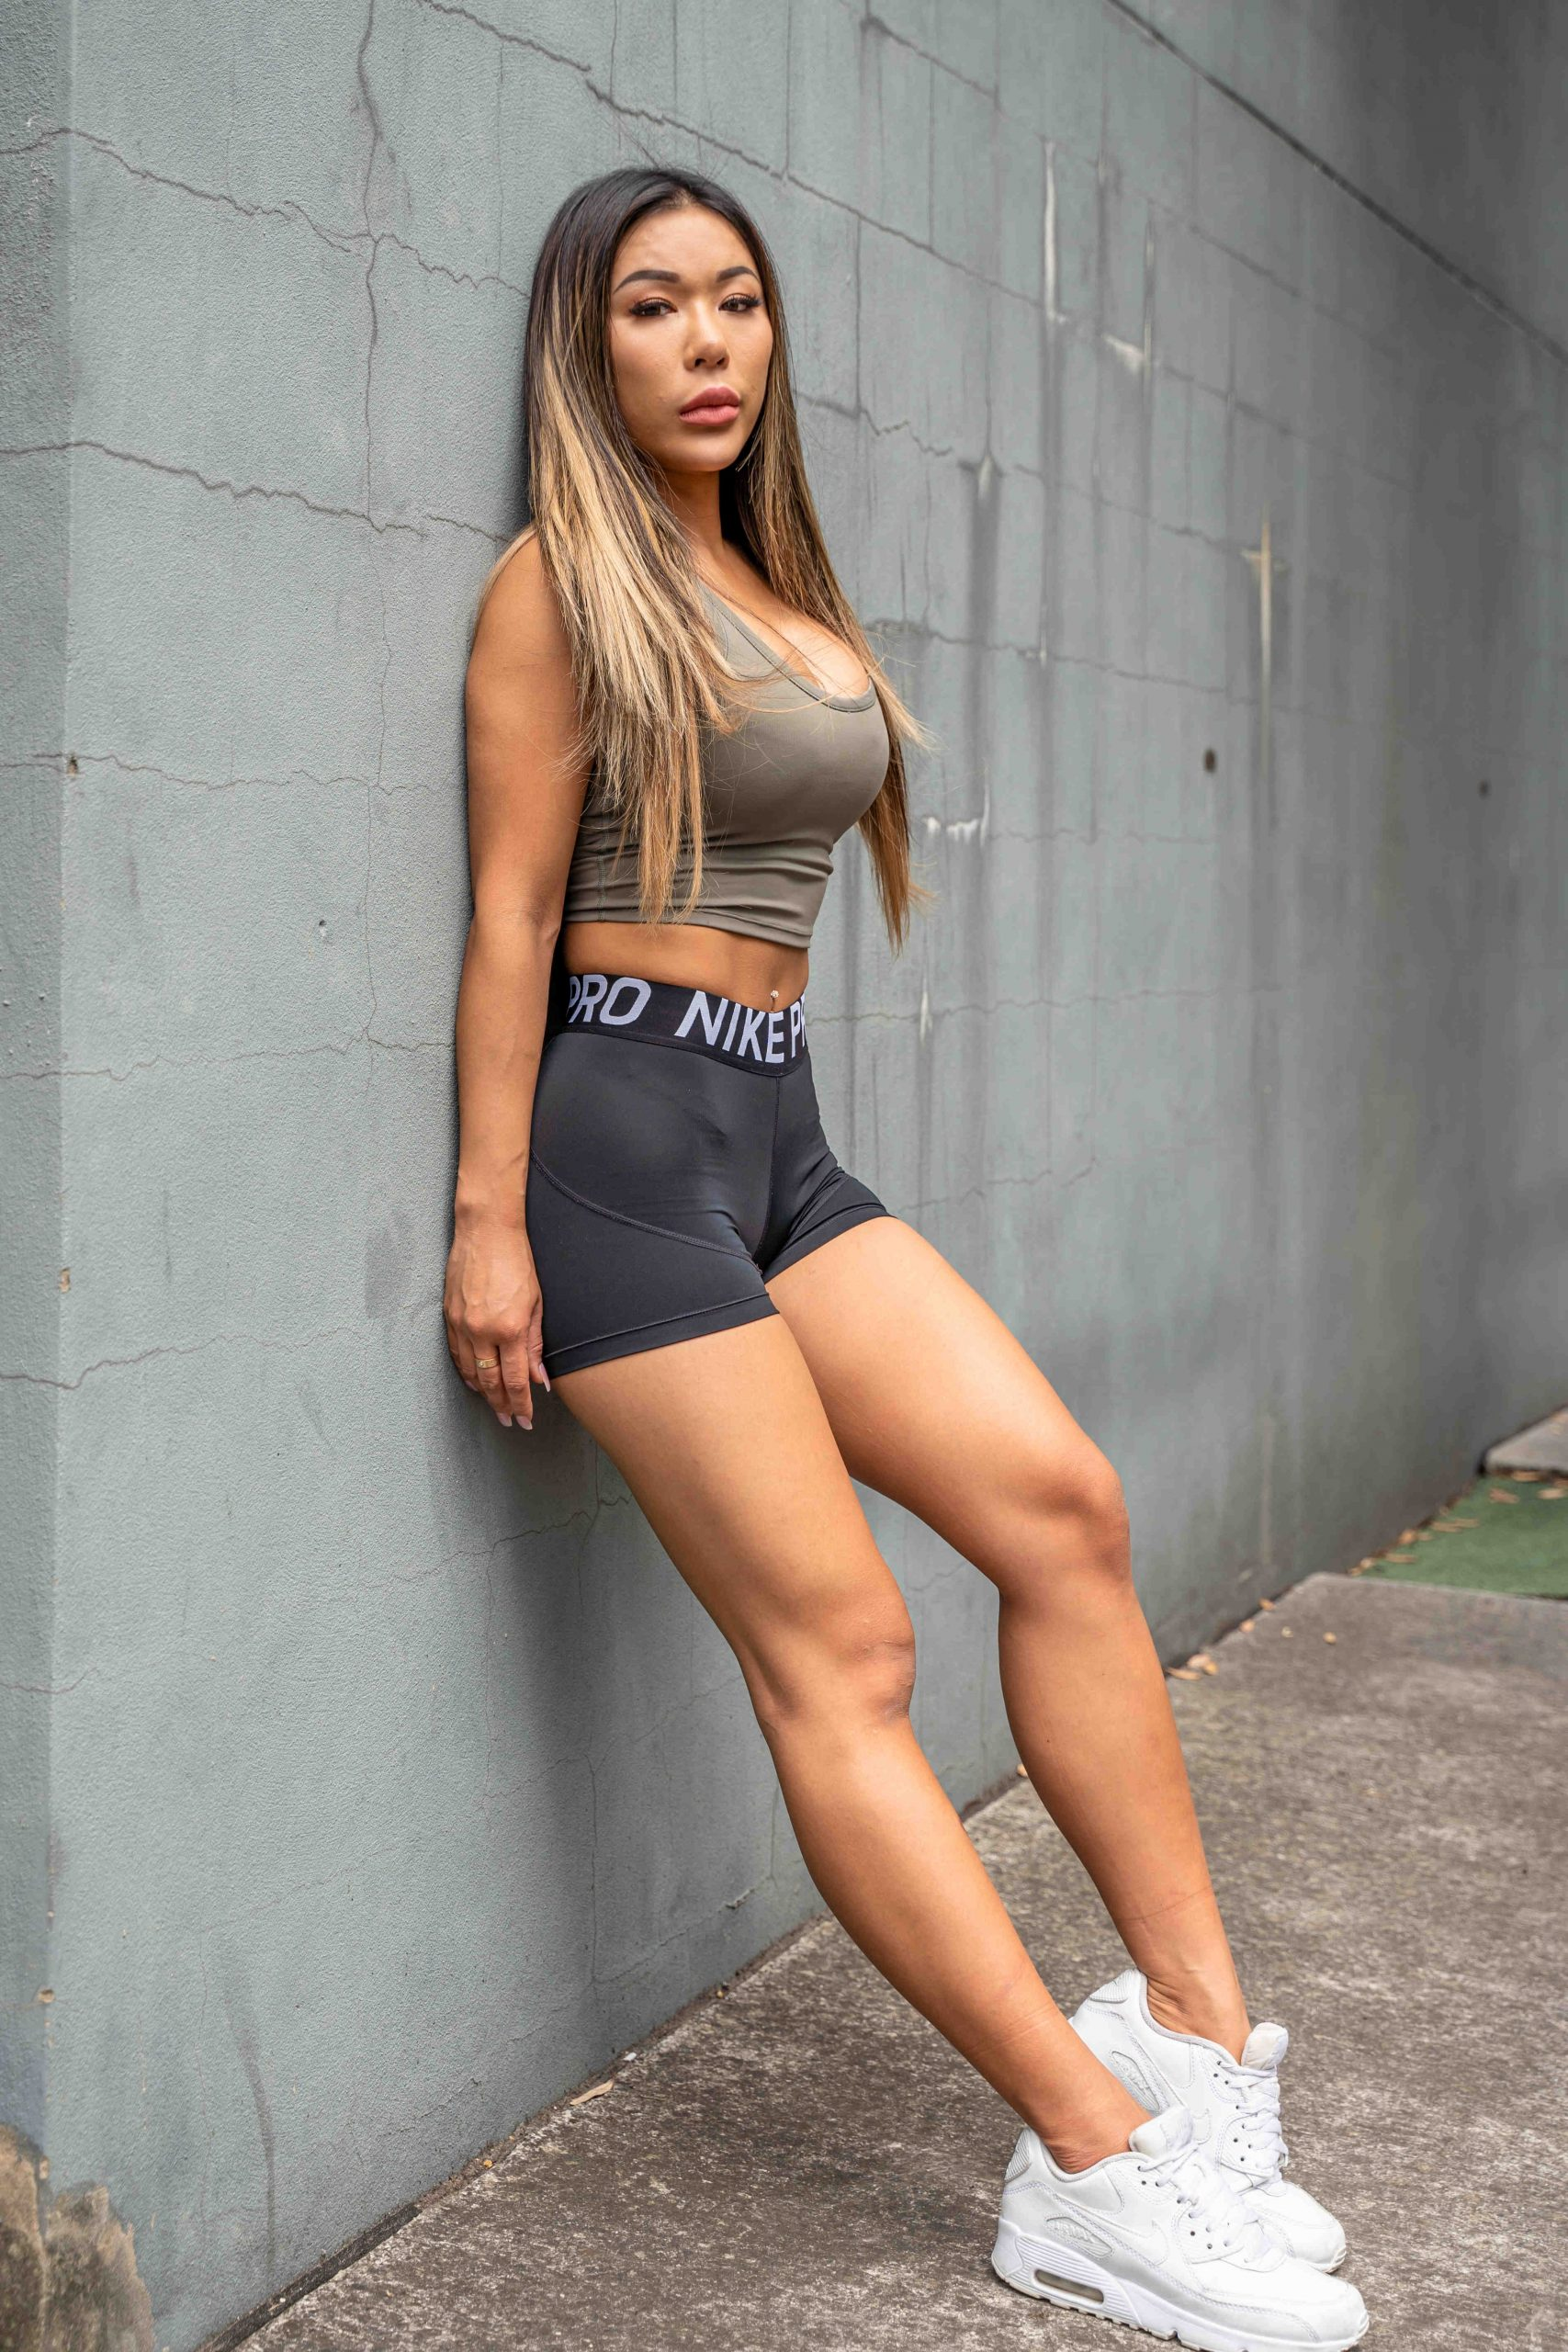 Zora Sydneys chinese fitness model leaning against the wall scaled